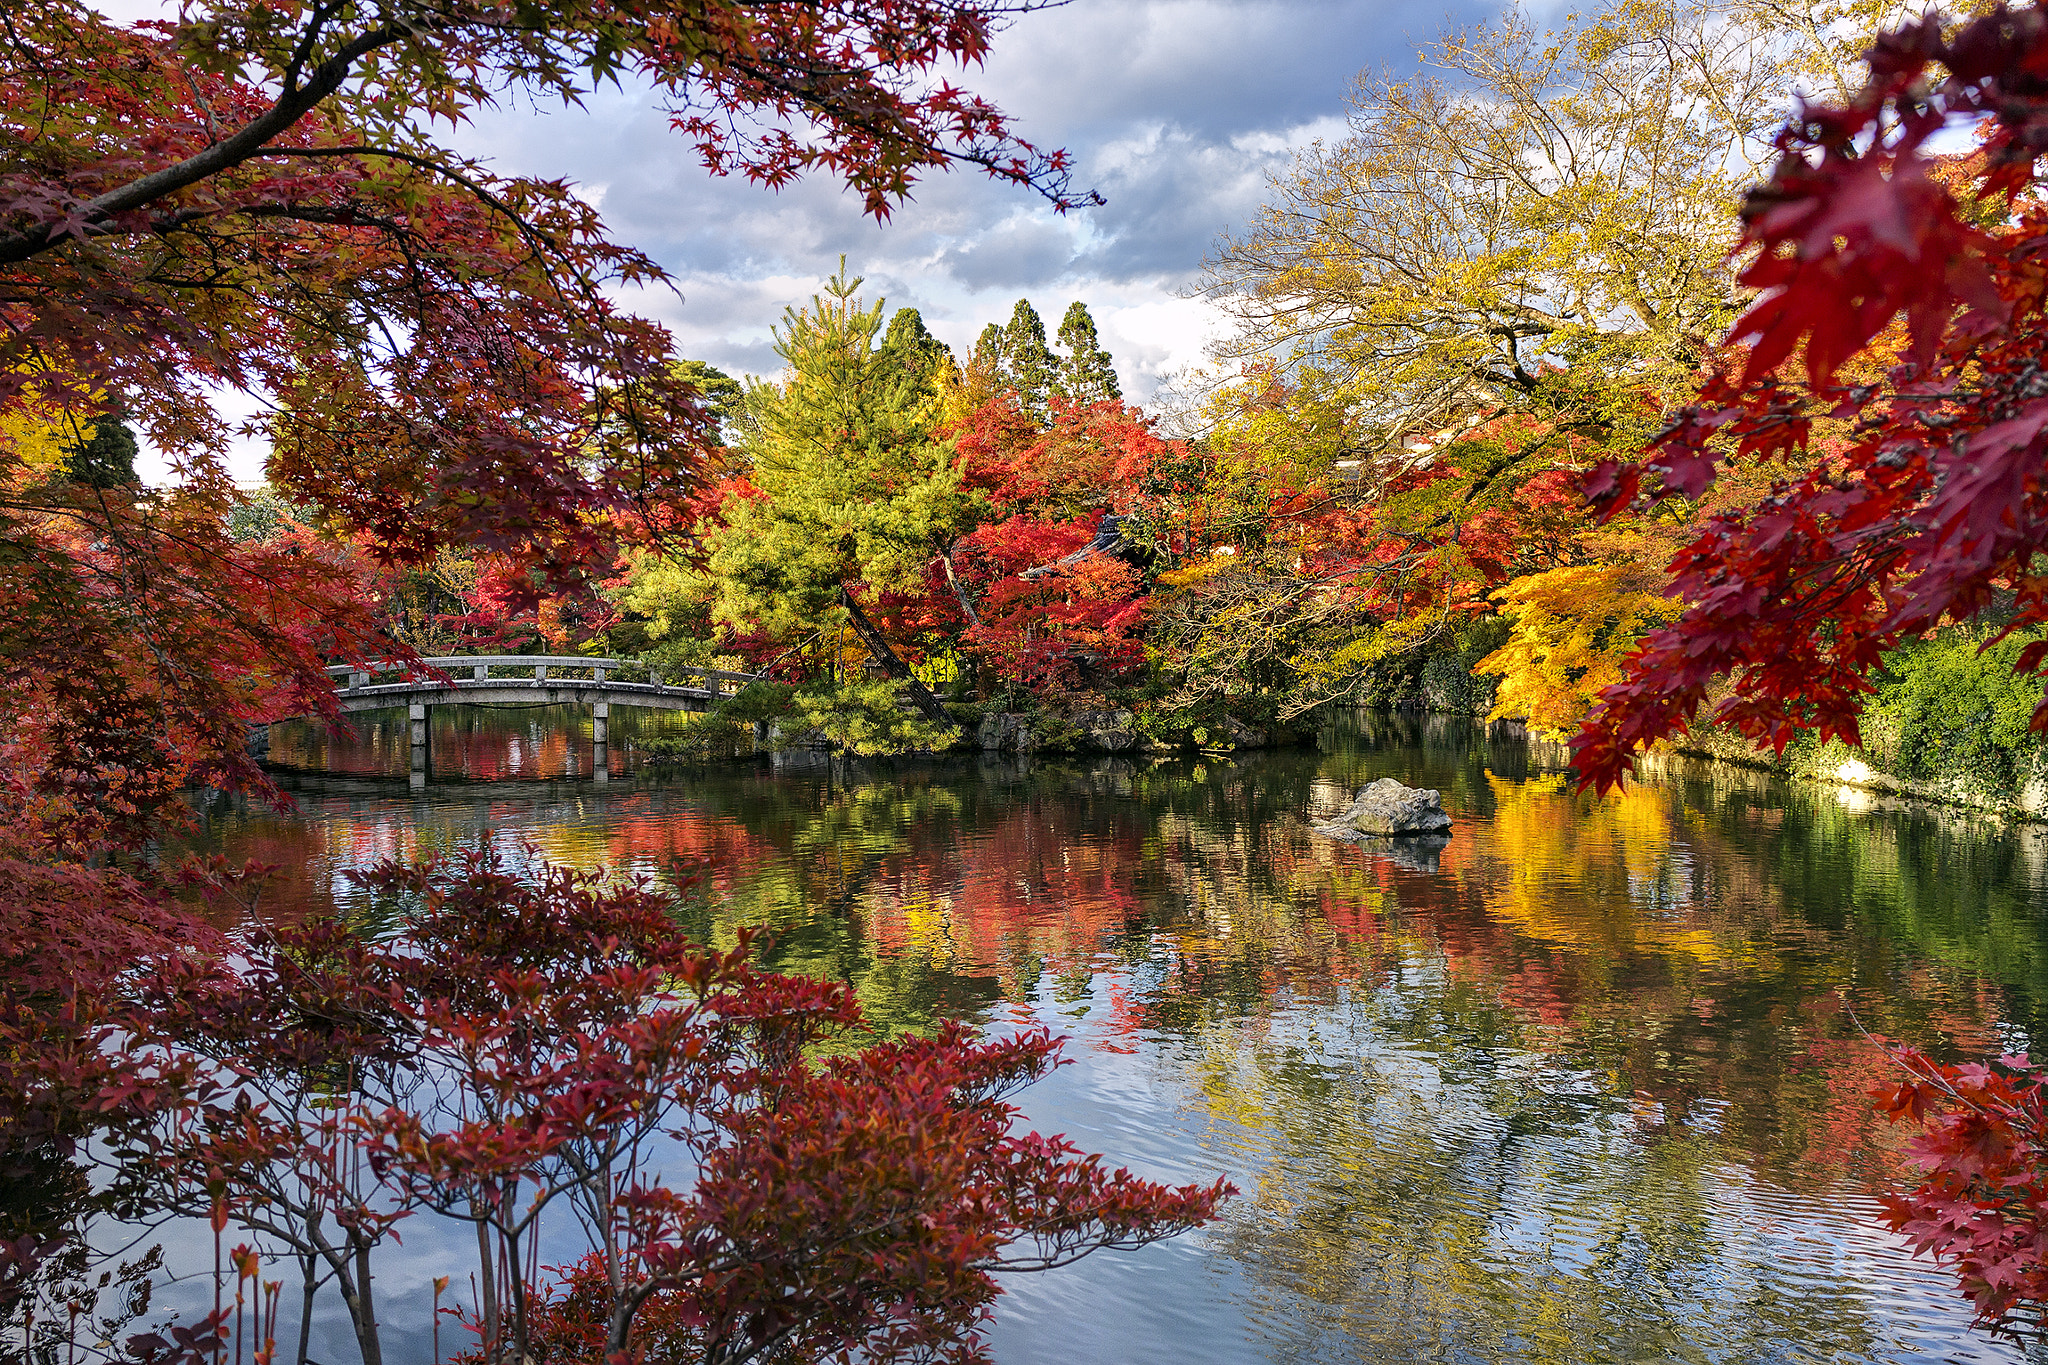 Photograph Just Colorful Fall ... by Chaluntorn Preeyasombat on 500px